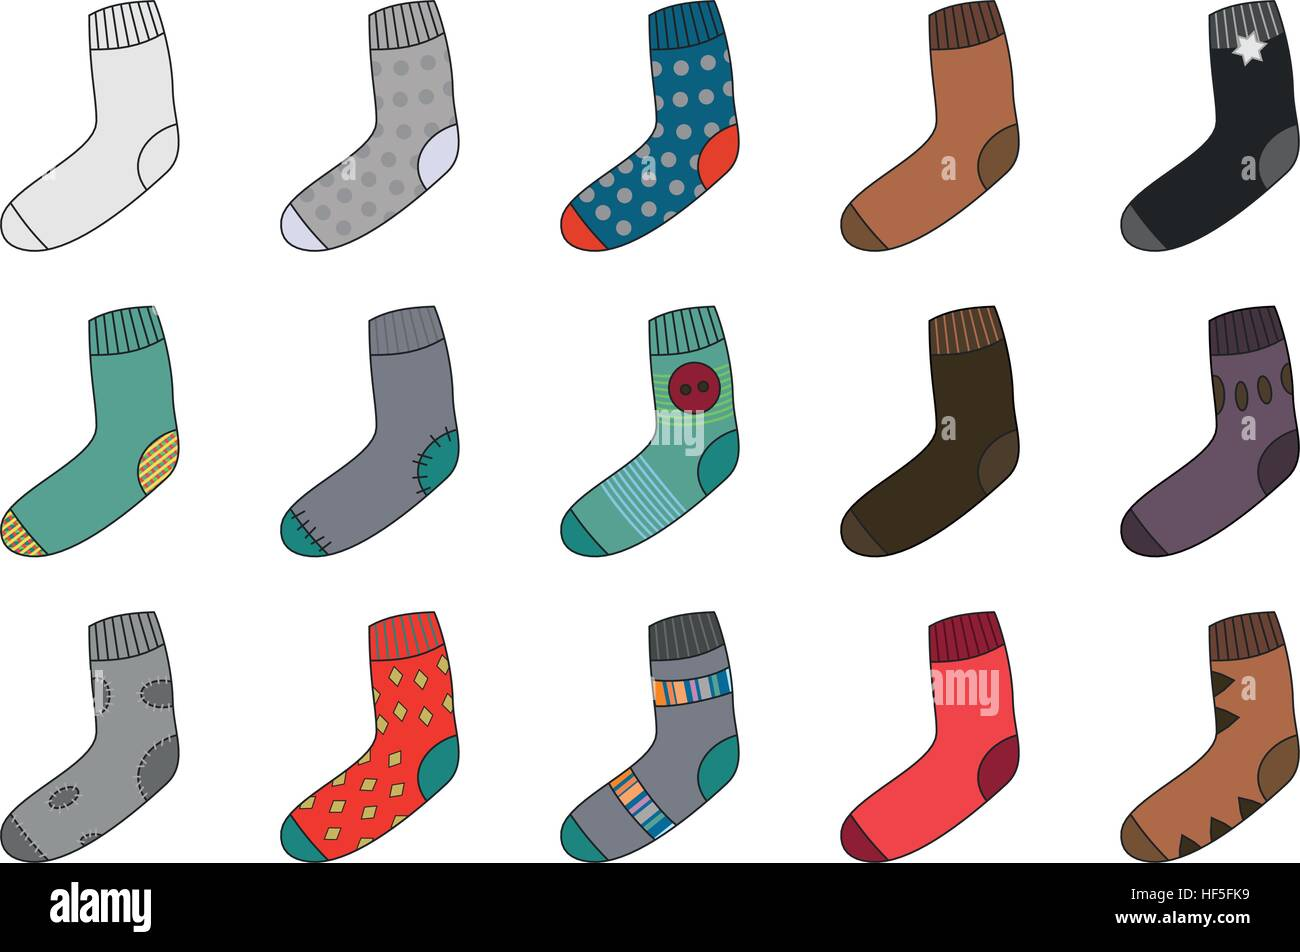 Many colorful wool socks. - Stock Vector